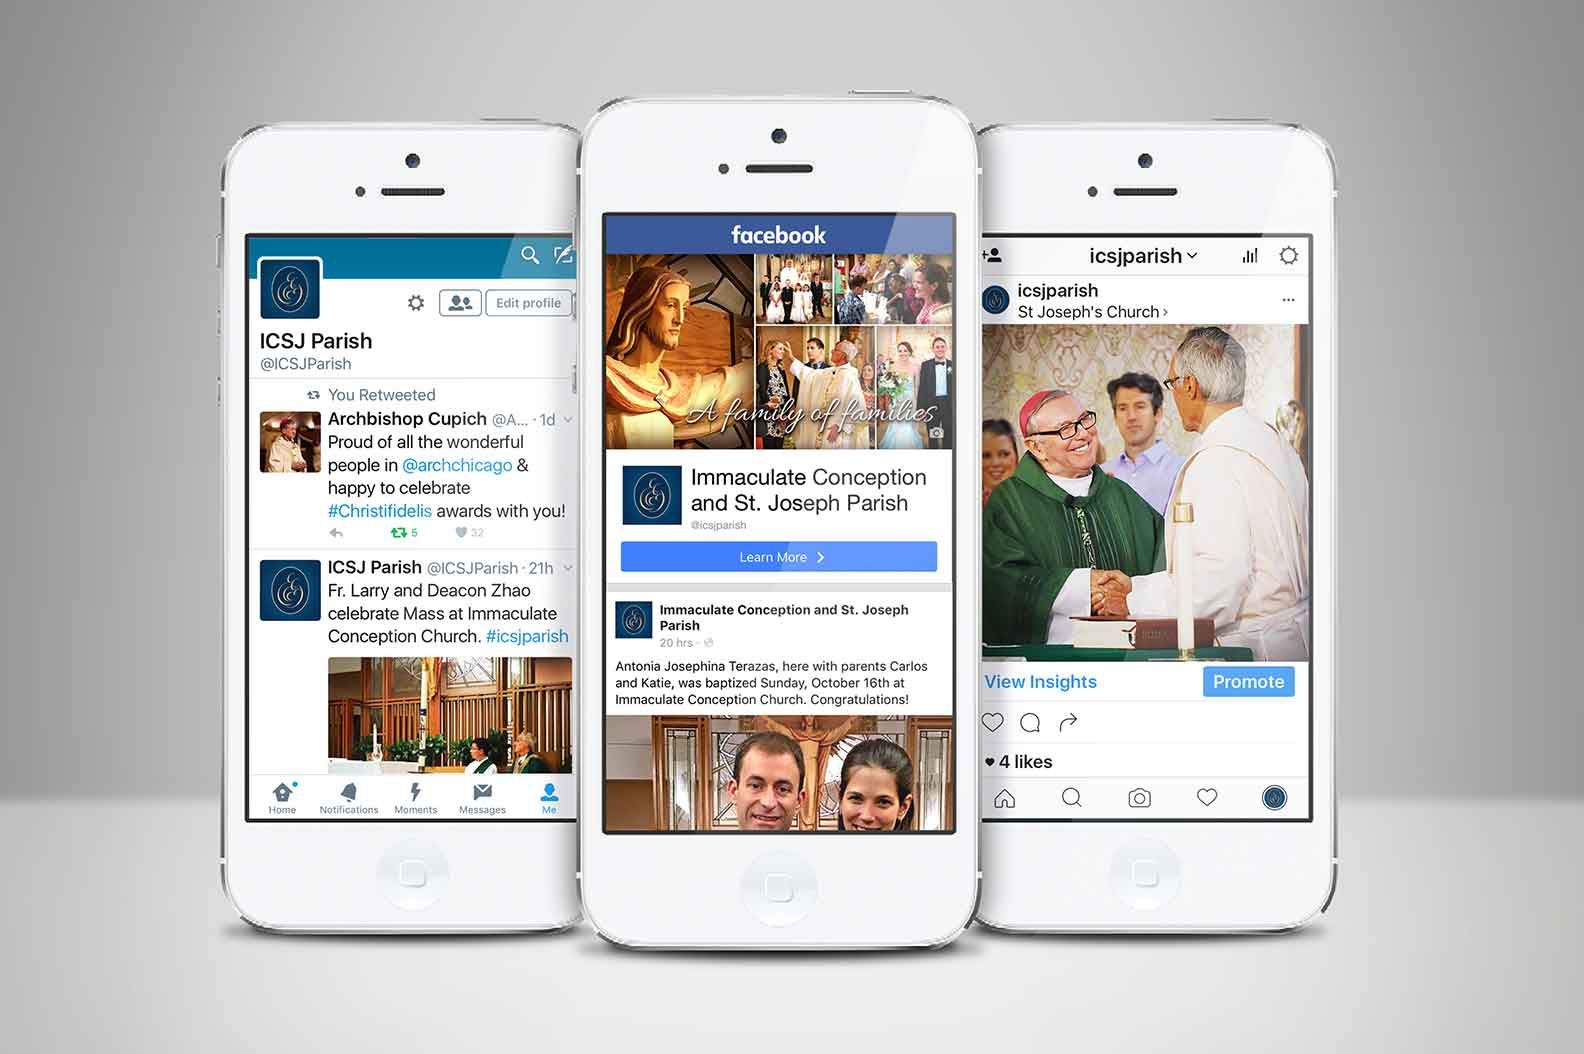 A dynamic social media presence has helped contemporize the parish, improve communication, and attract new parishioners.